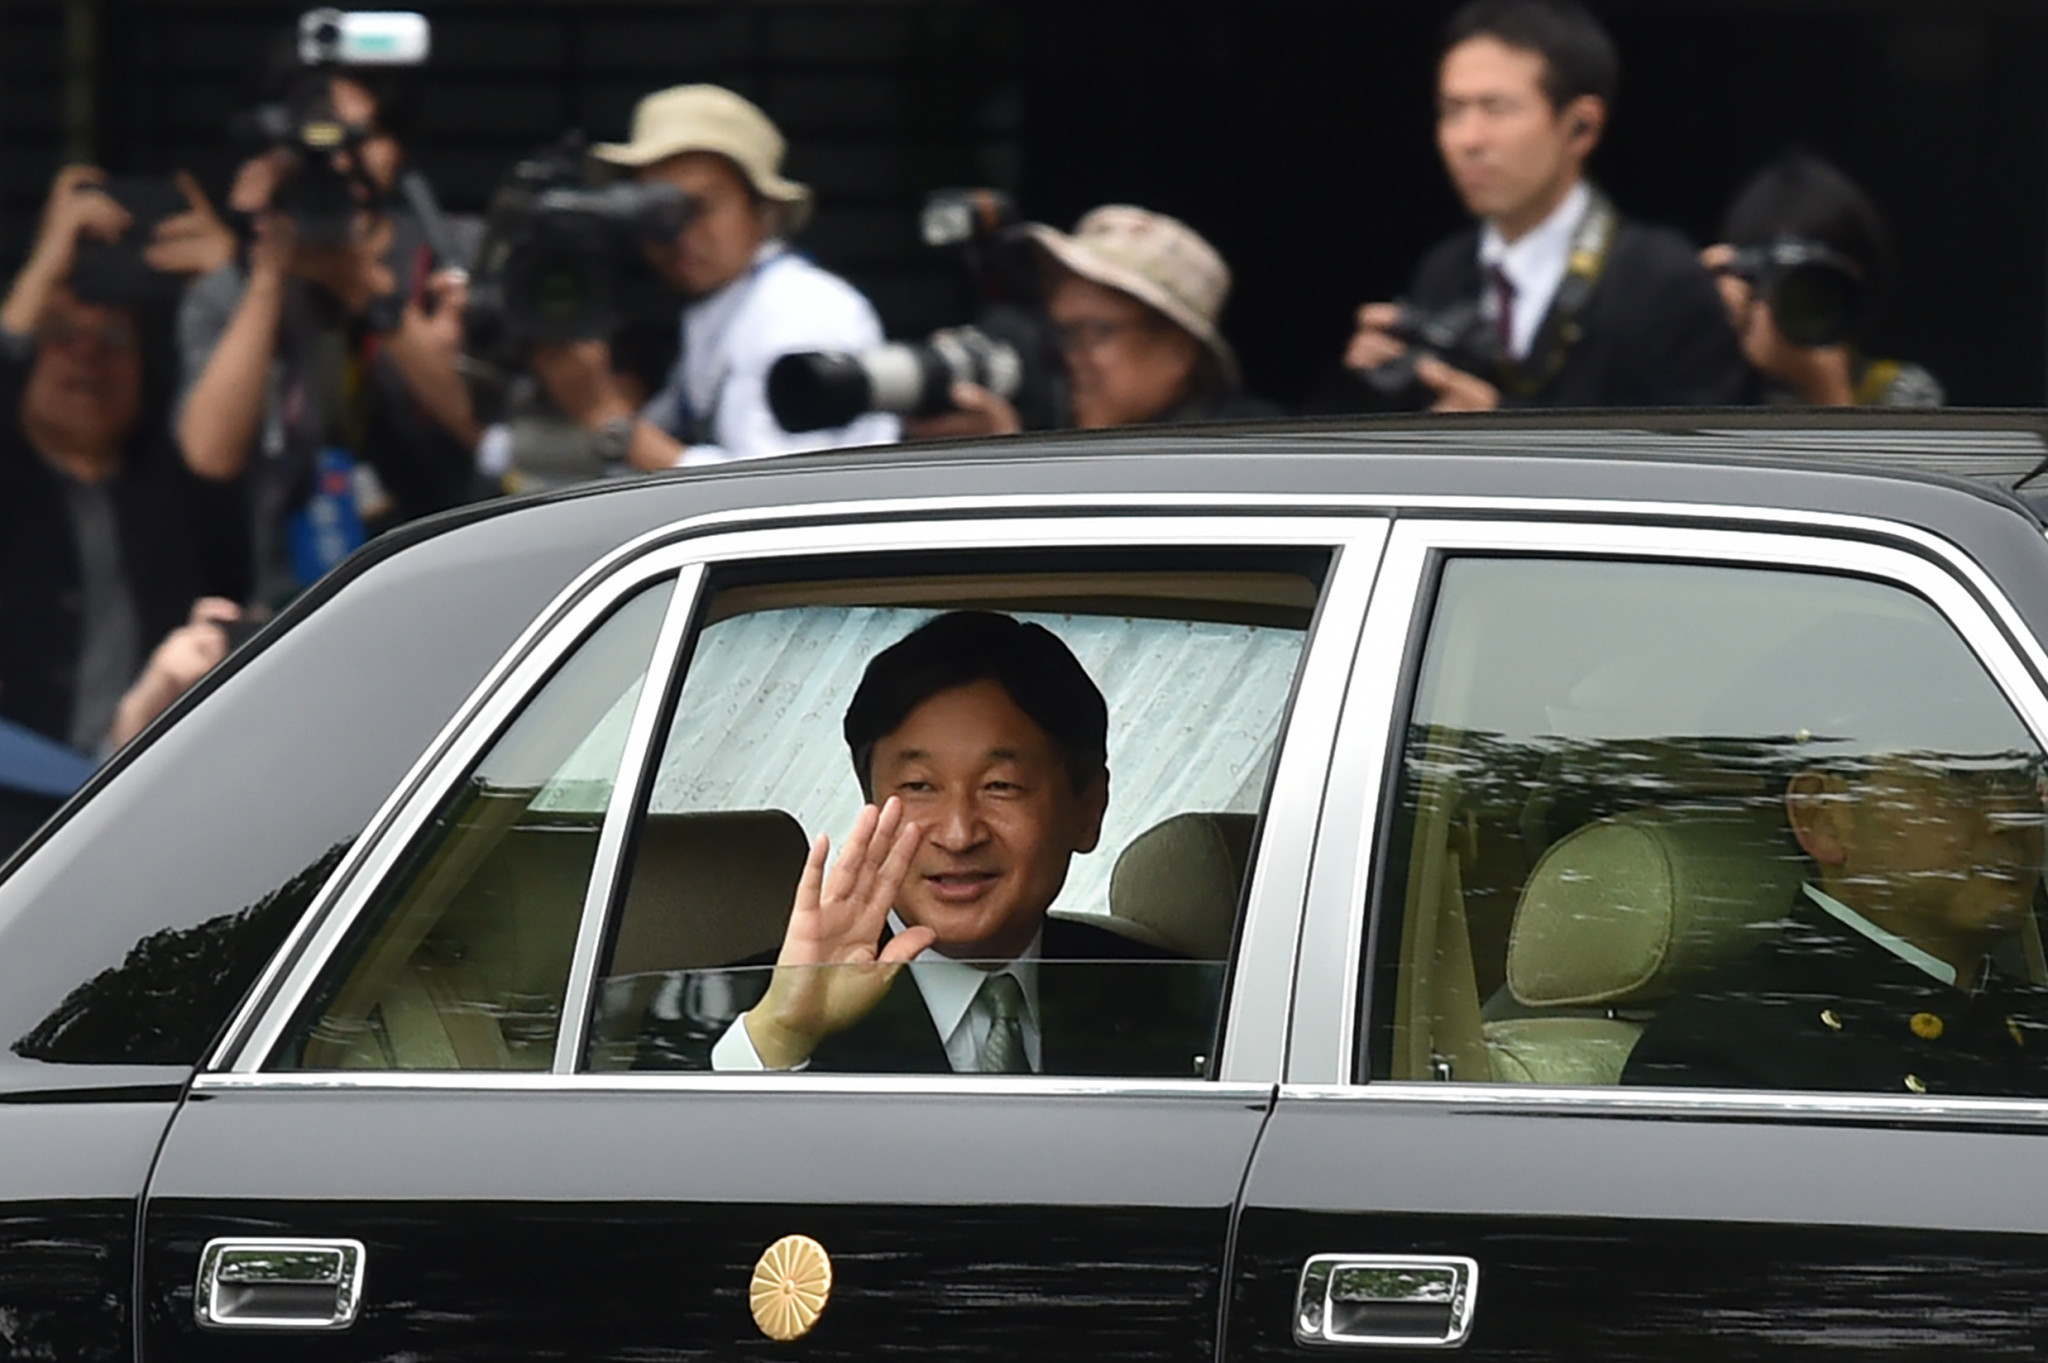 Emperor Naruhito is set to open the Tokyo 2020 Olympic Games ©Getty Images